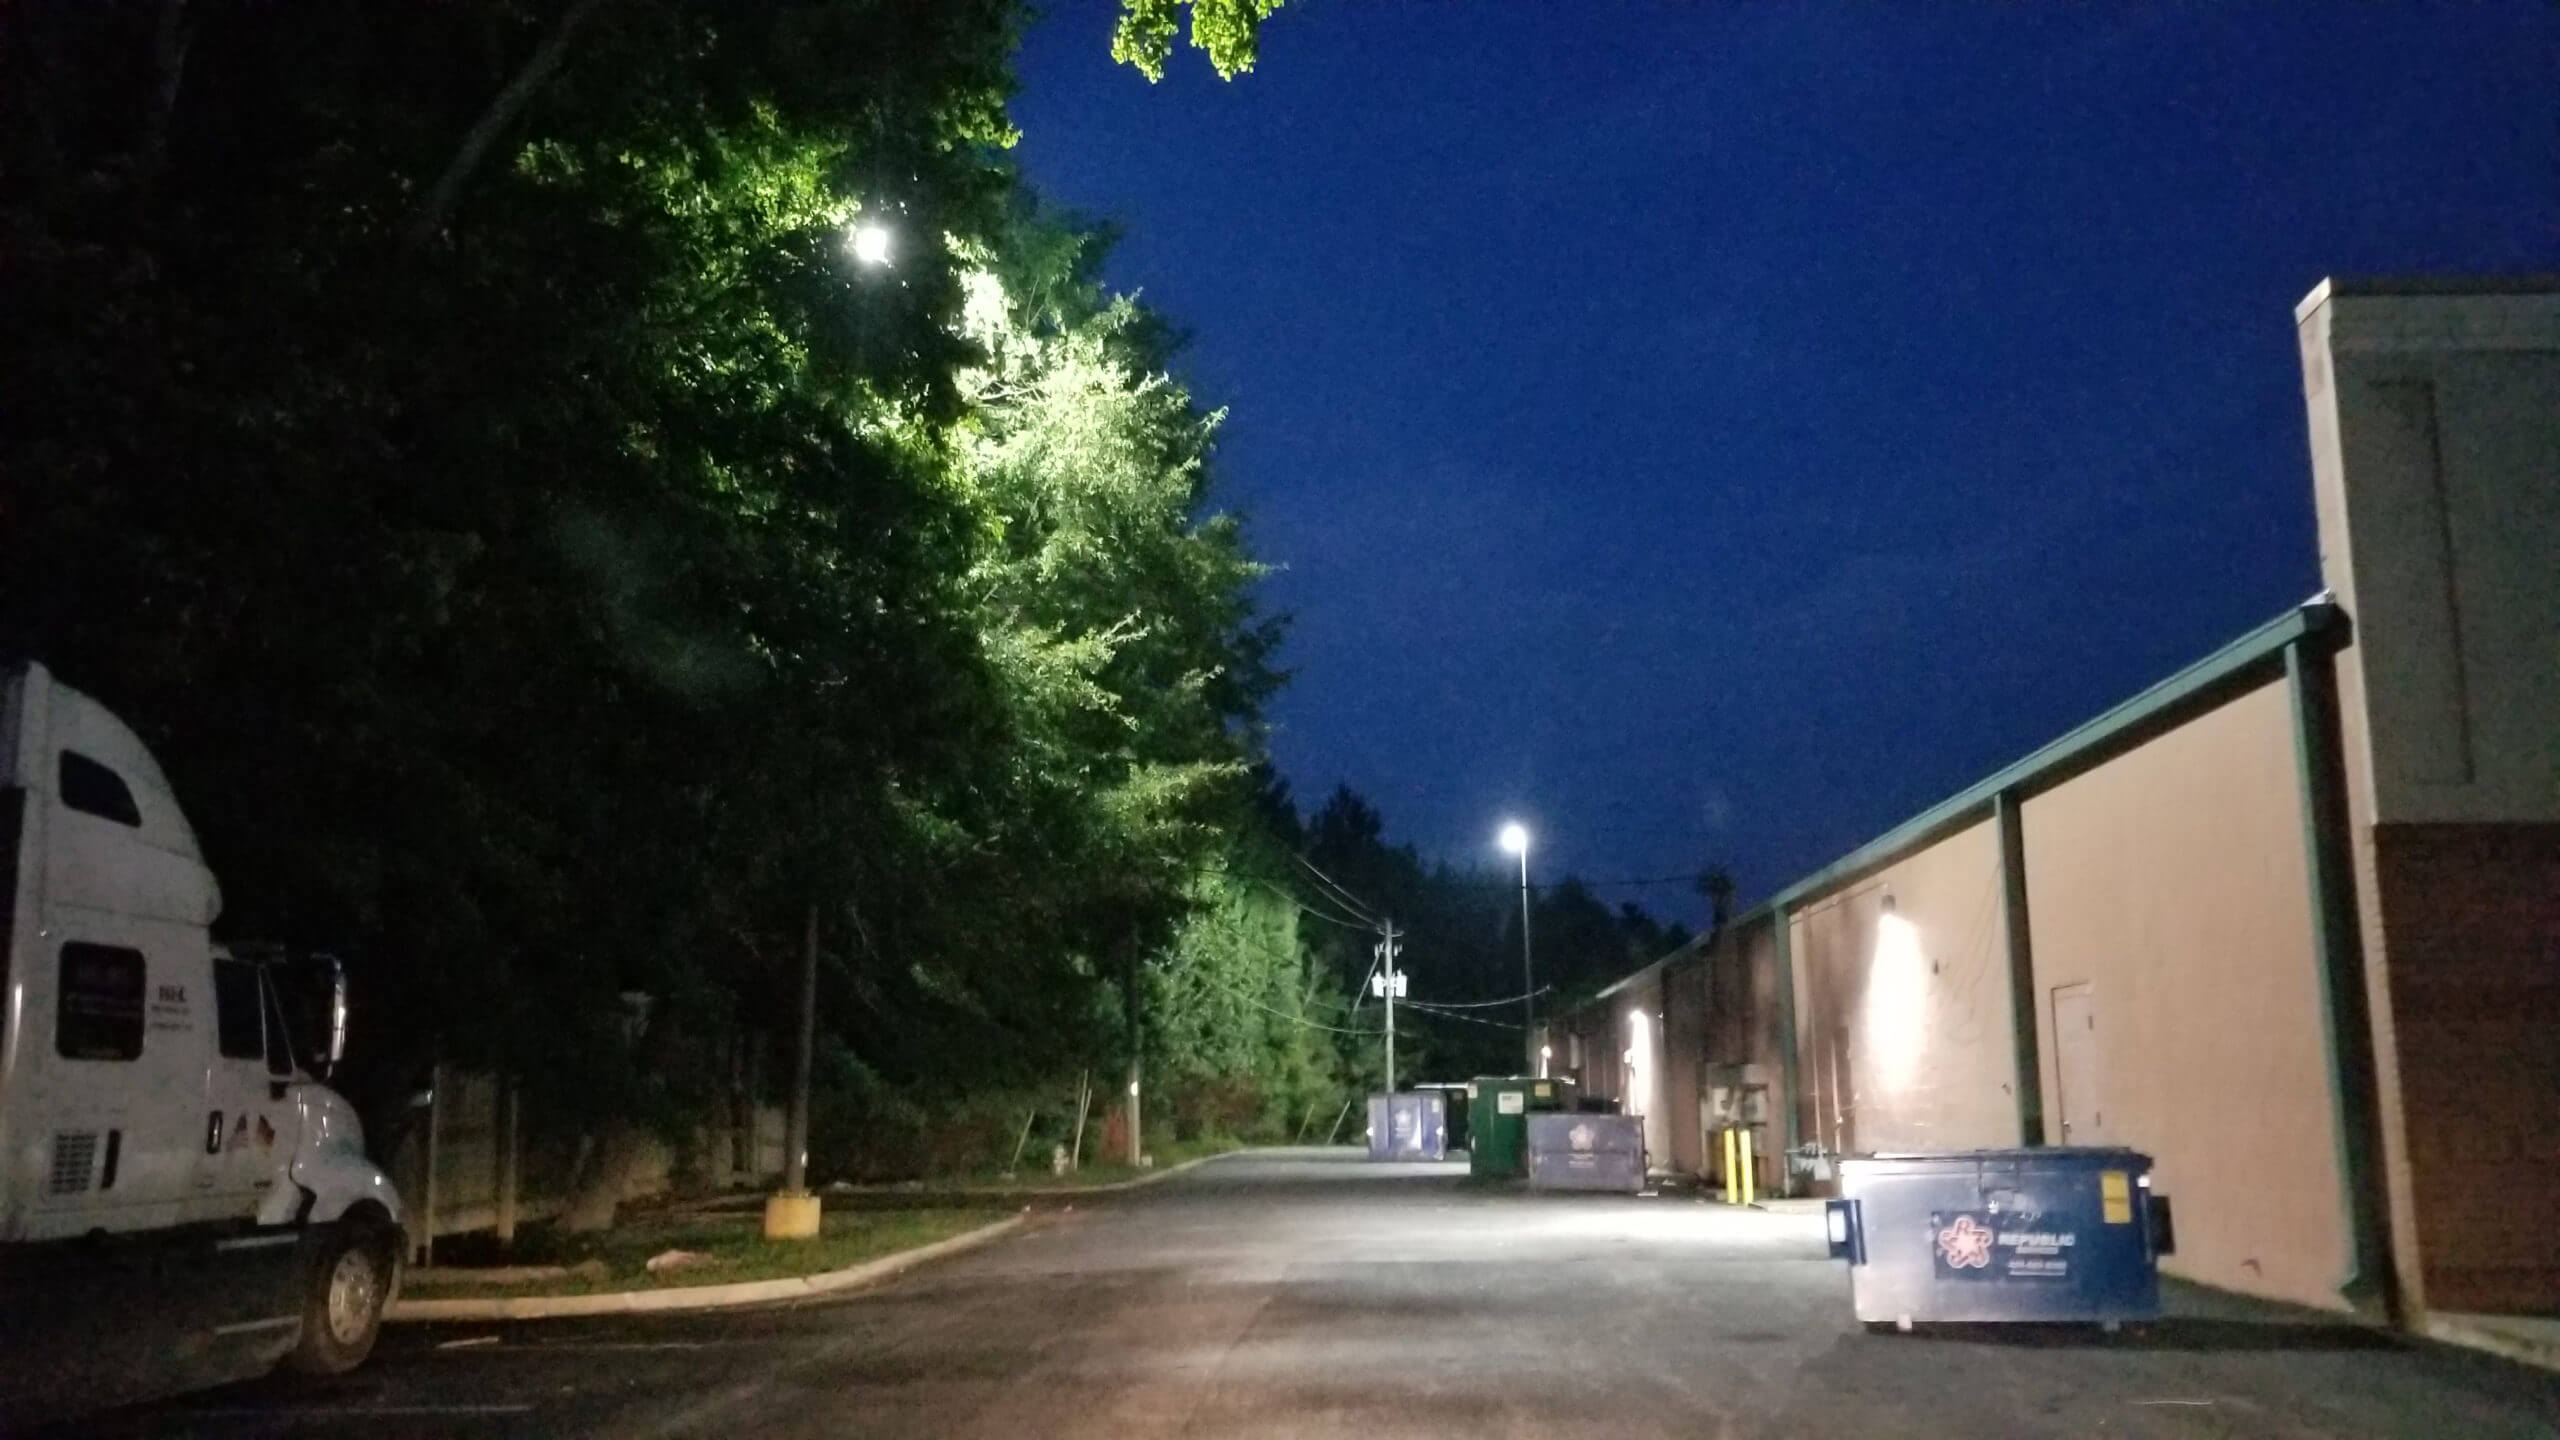 LED Conversion for security